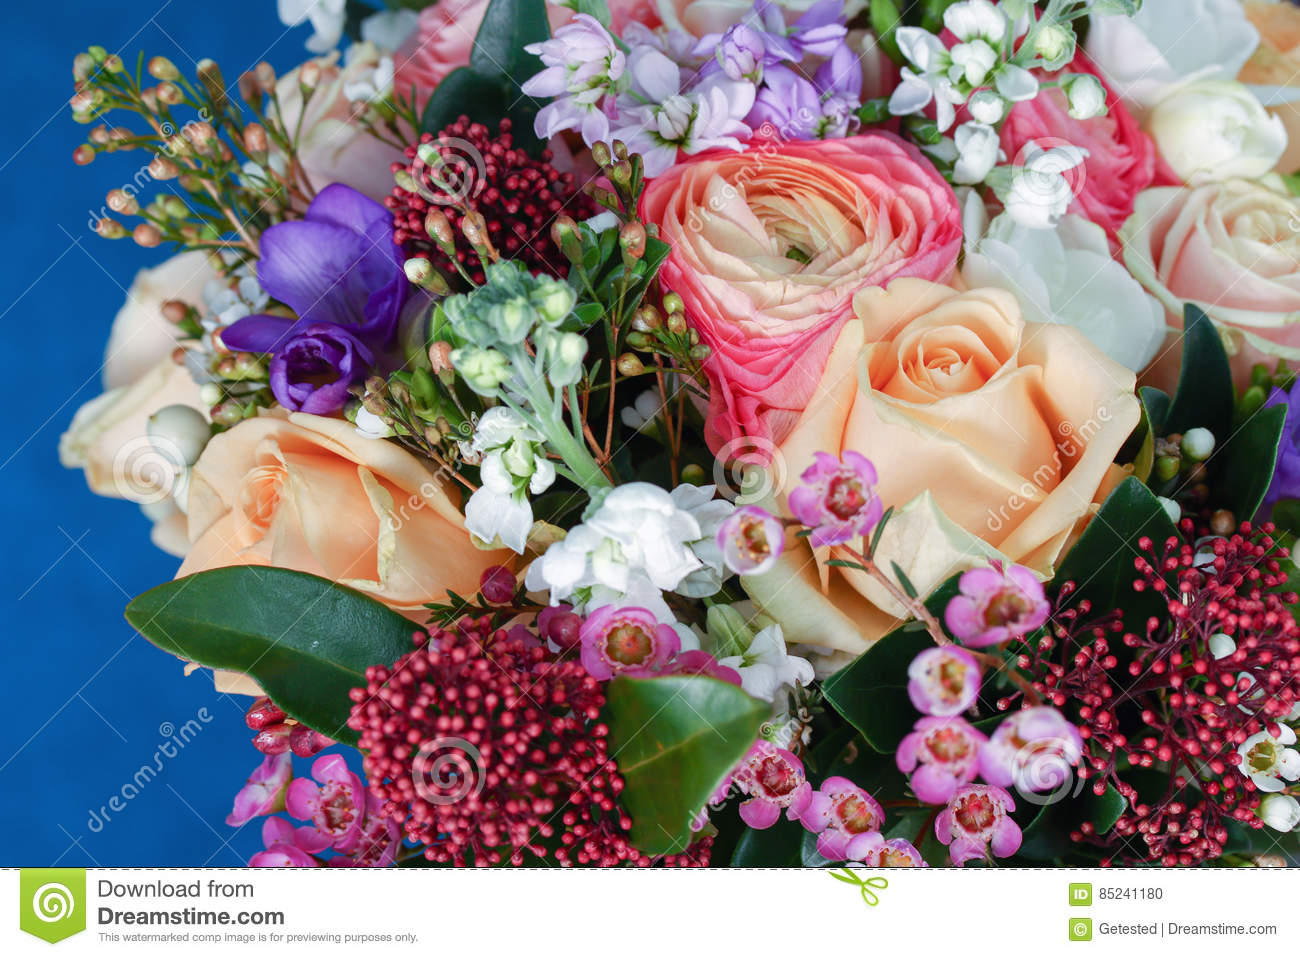 Huge bouquet of roses stock photo. Image of carnations - 85241180